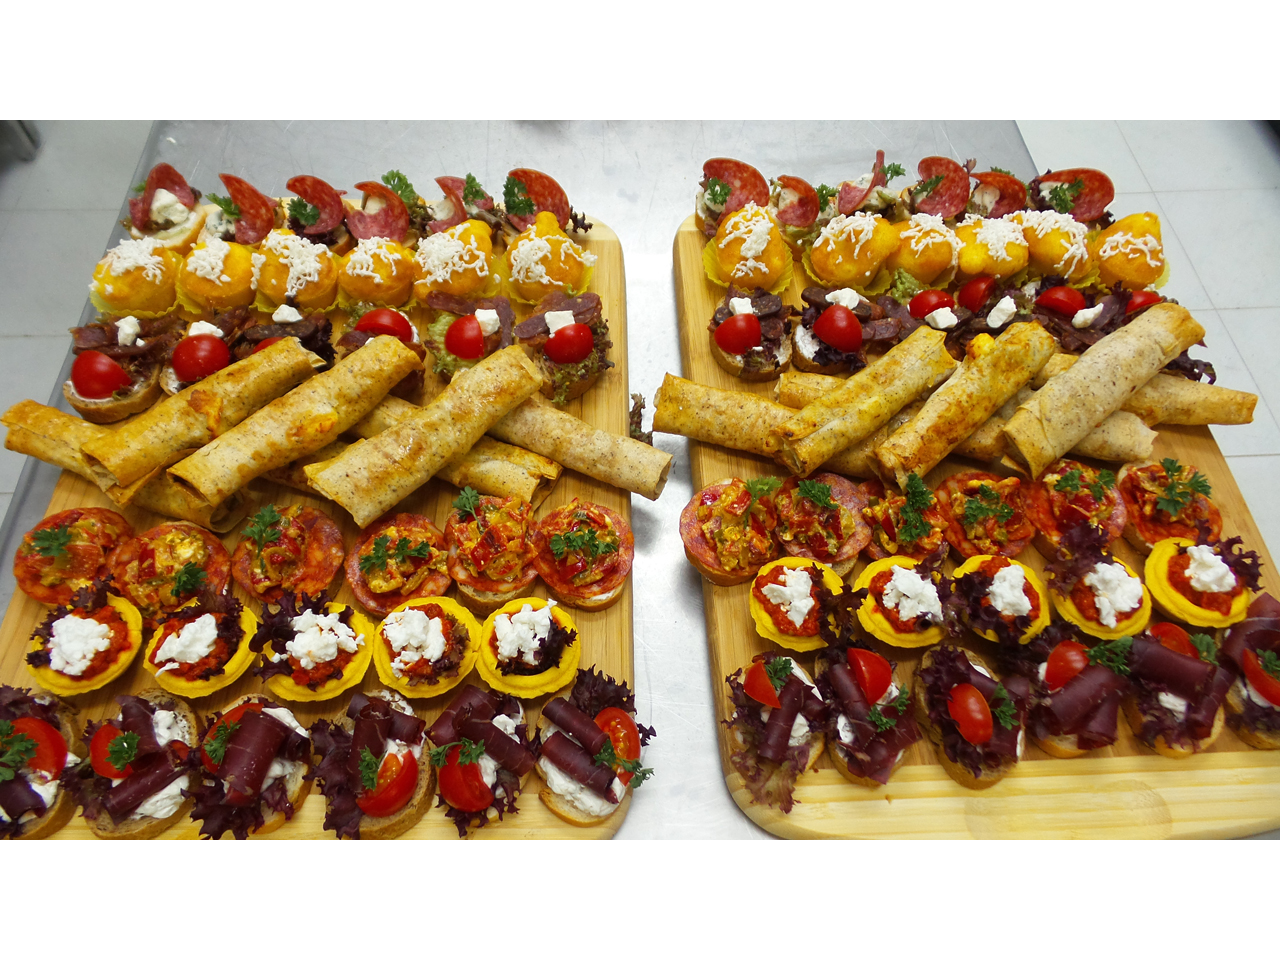 CITY CATERING Ketering Beograd